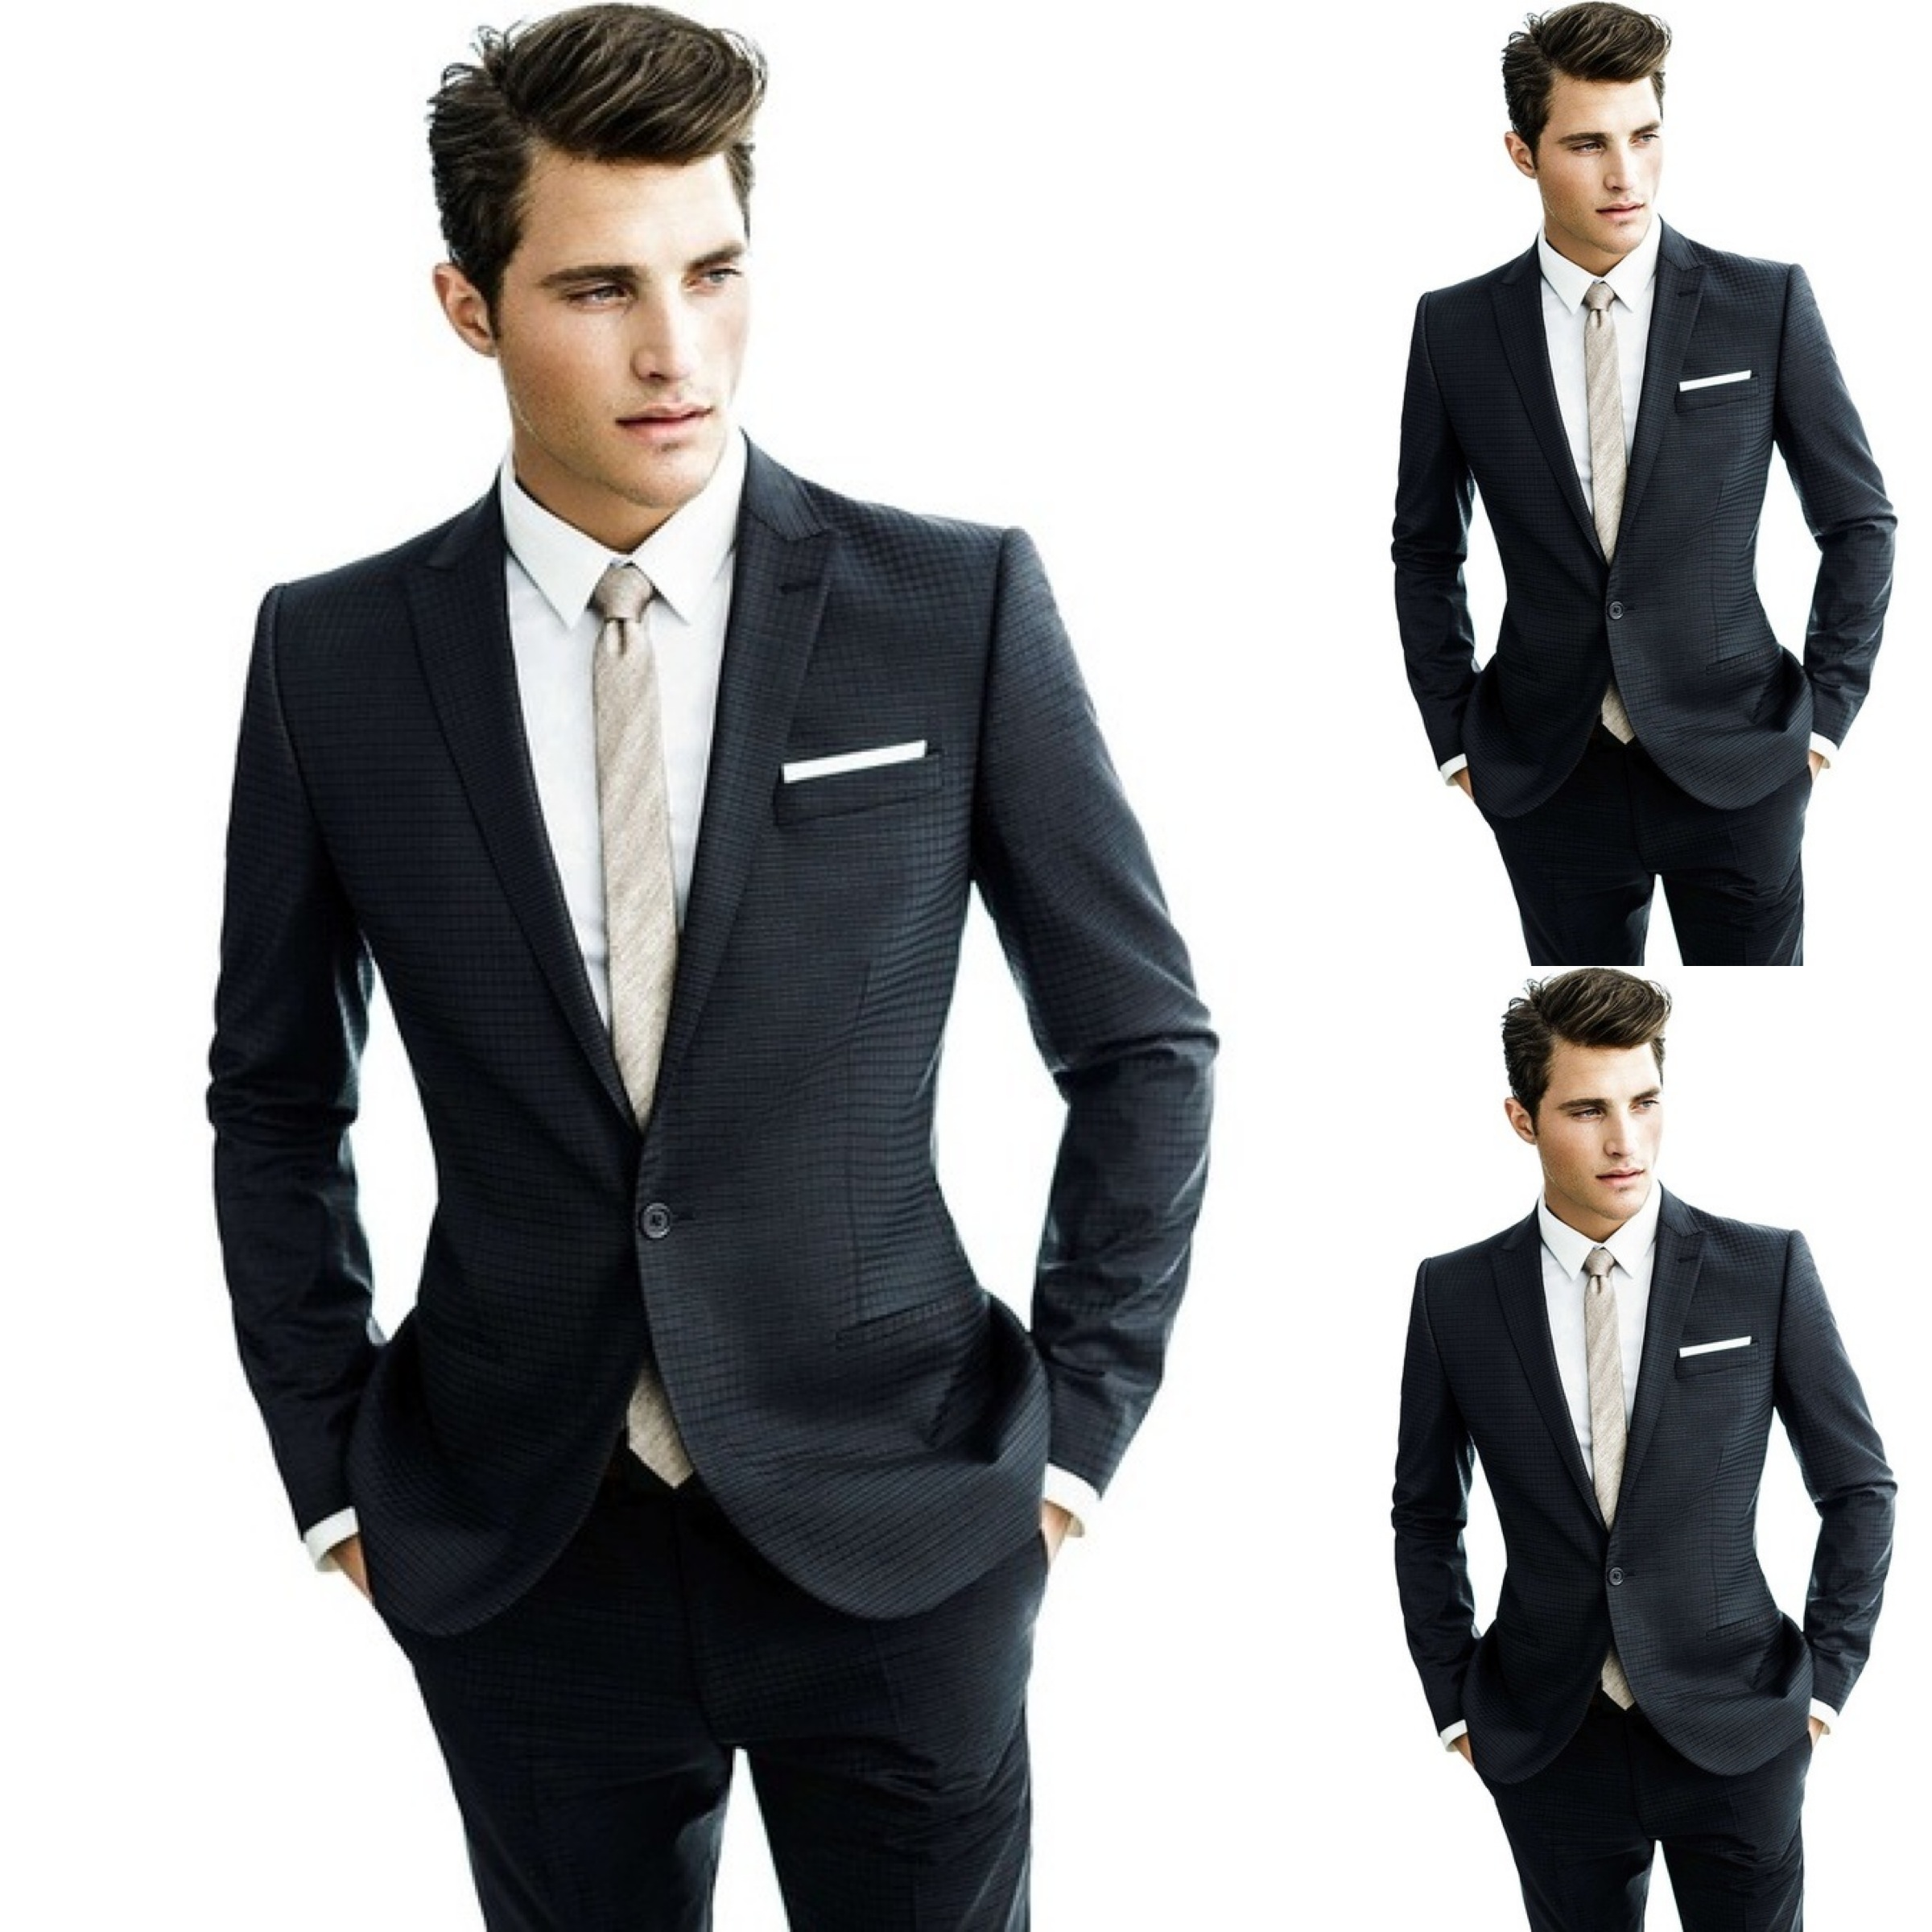 #3 (194 likes on The Man Has Style) :: Smart Suiting